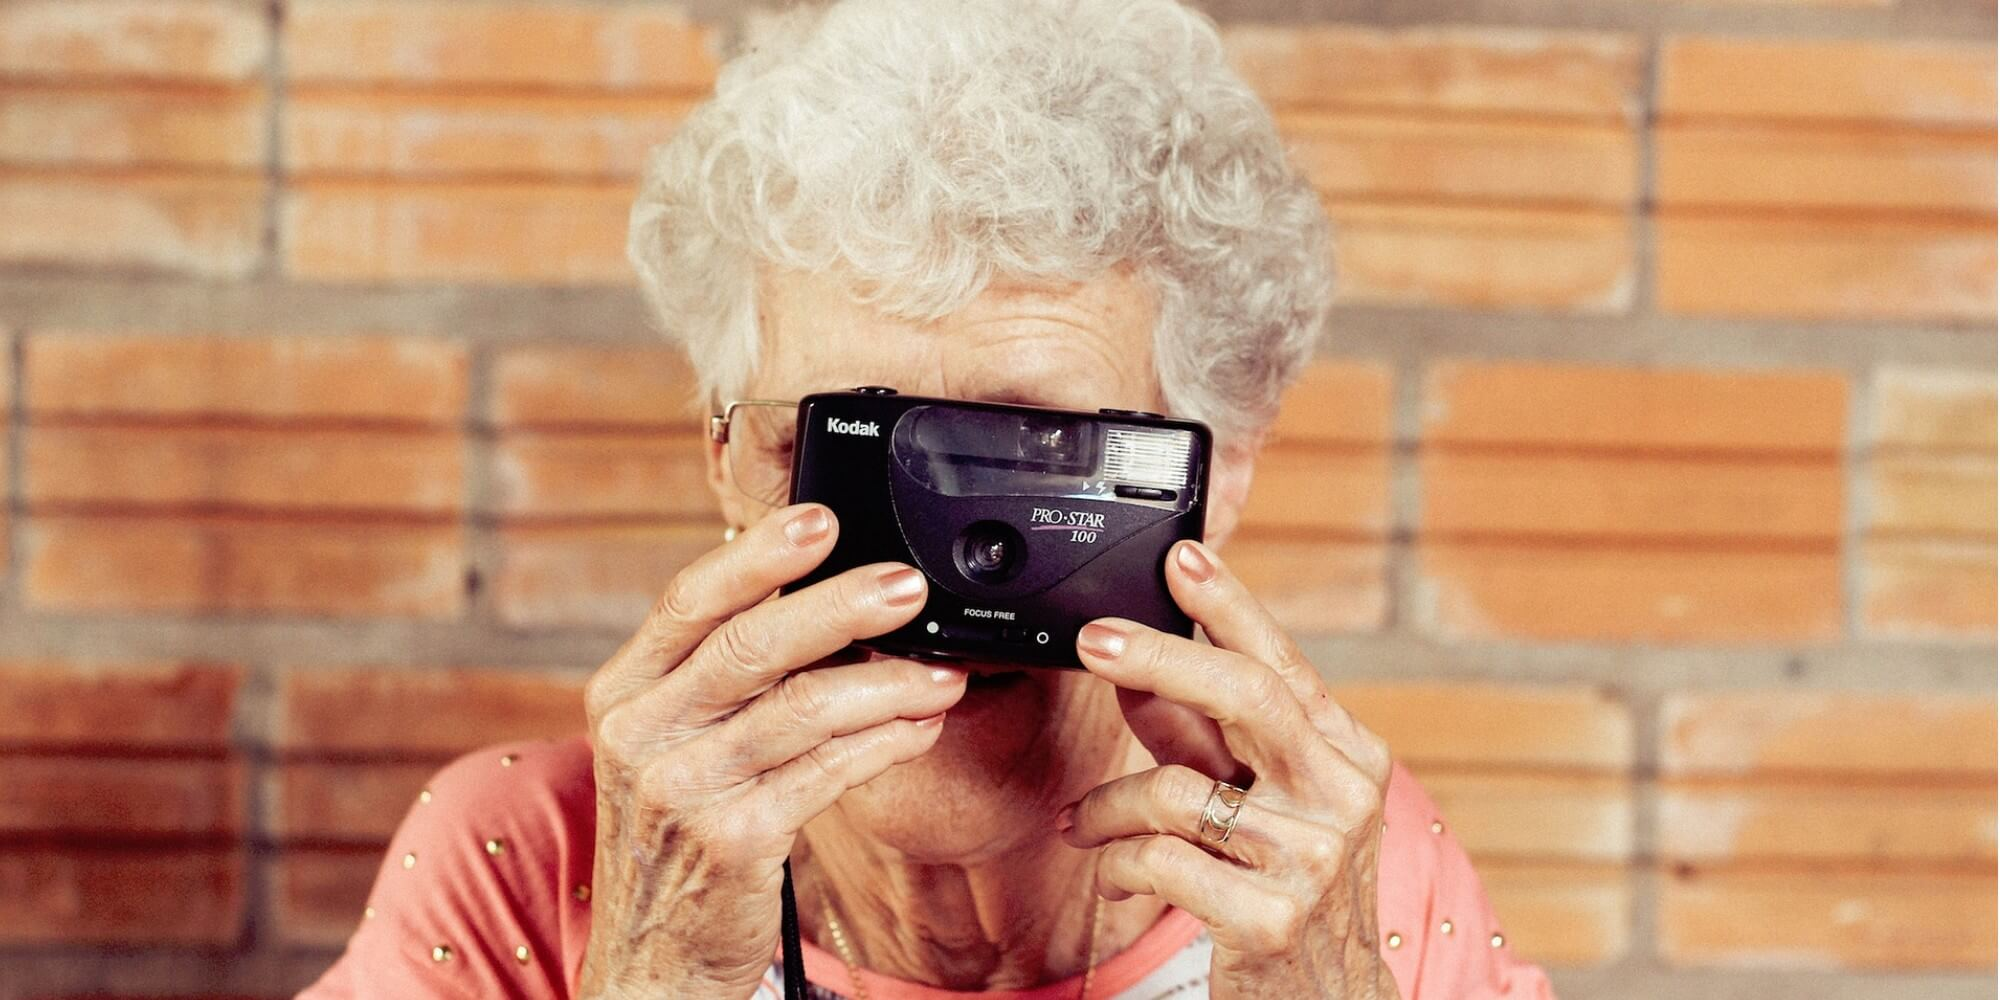 This Grandma is Being Forced to Delete Online Photos of her Grandkids